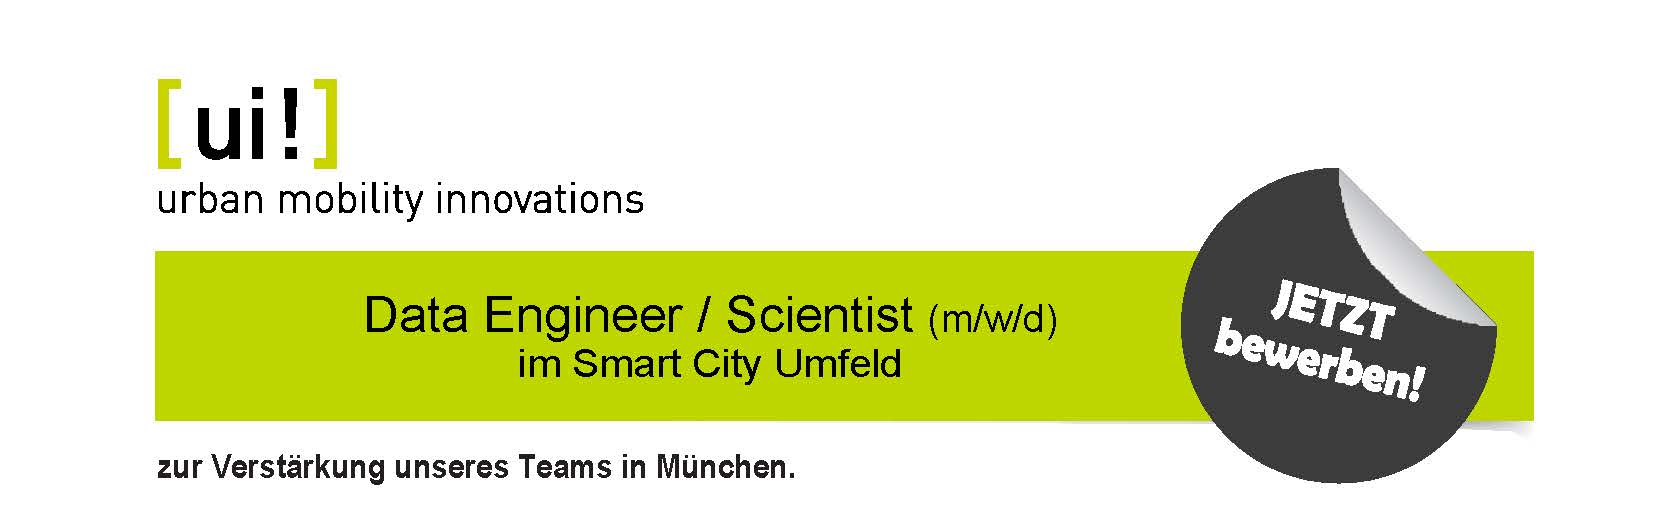 Data Engineer / Scientist